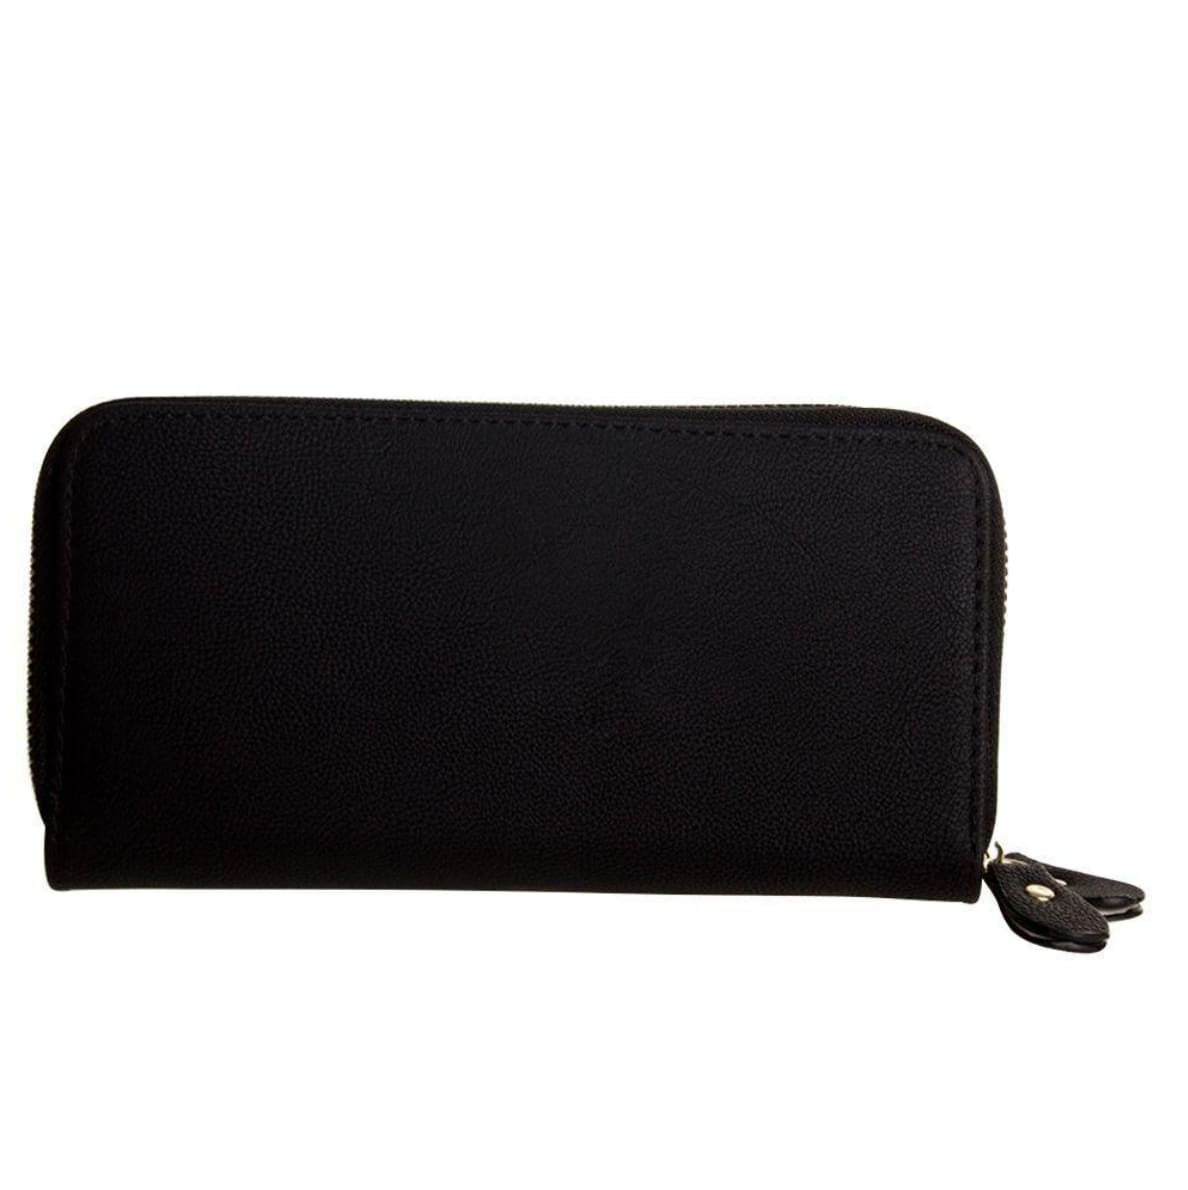 Little Black Clutches For Every Occasion  - Photo #5